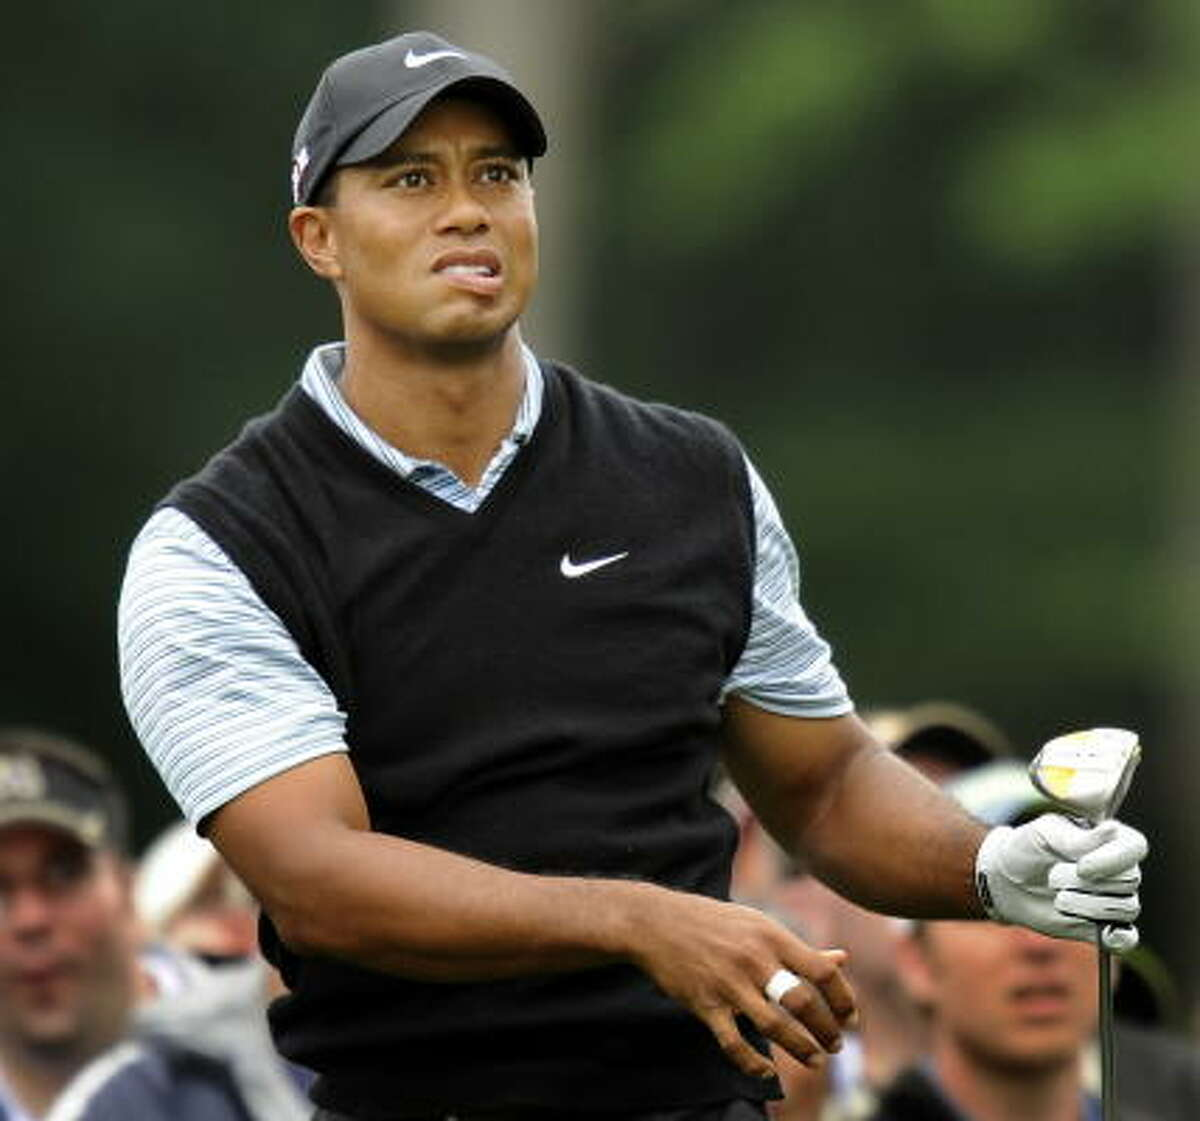 Tiger Woods has admitted to letting his family down, and several women have come out saying they've had relations with him. He might need to buy his wife a Kobe Bryant special.